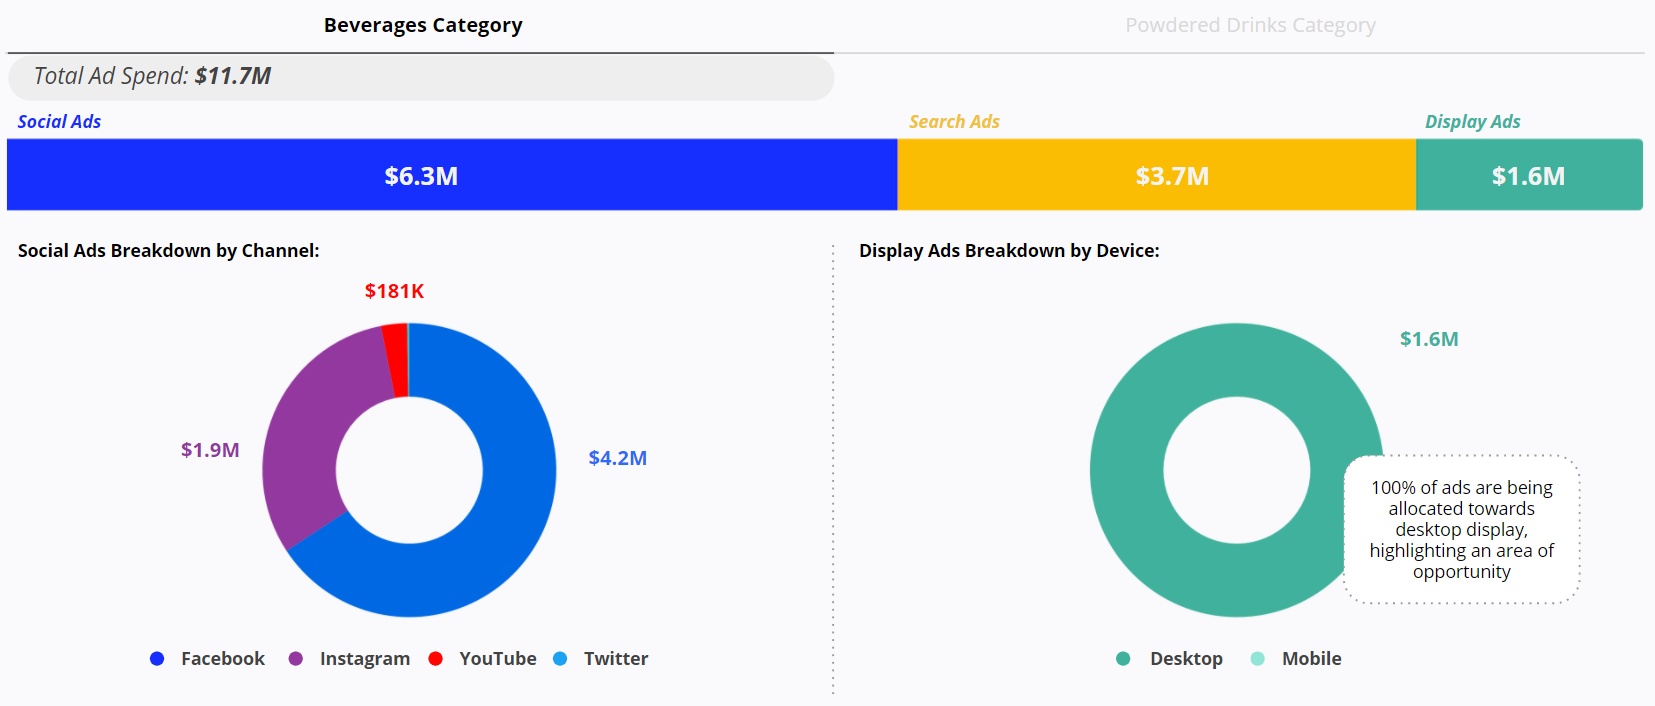 Beverages Category - Social Ads Breakdown by Channel